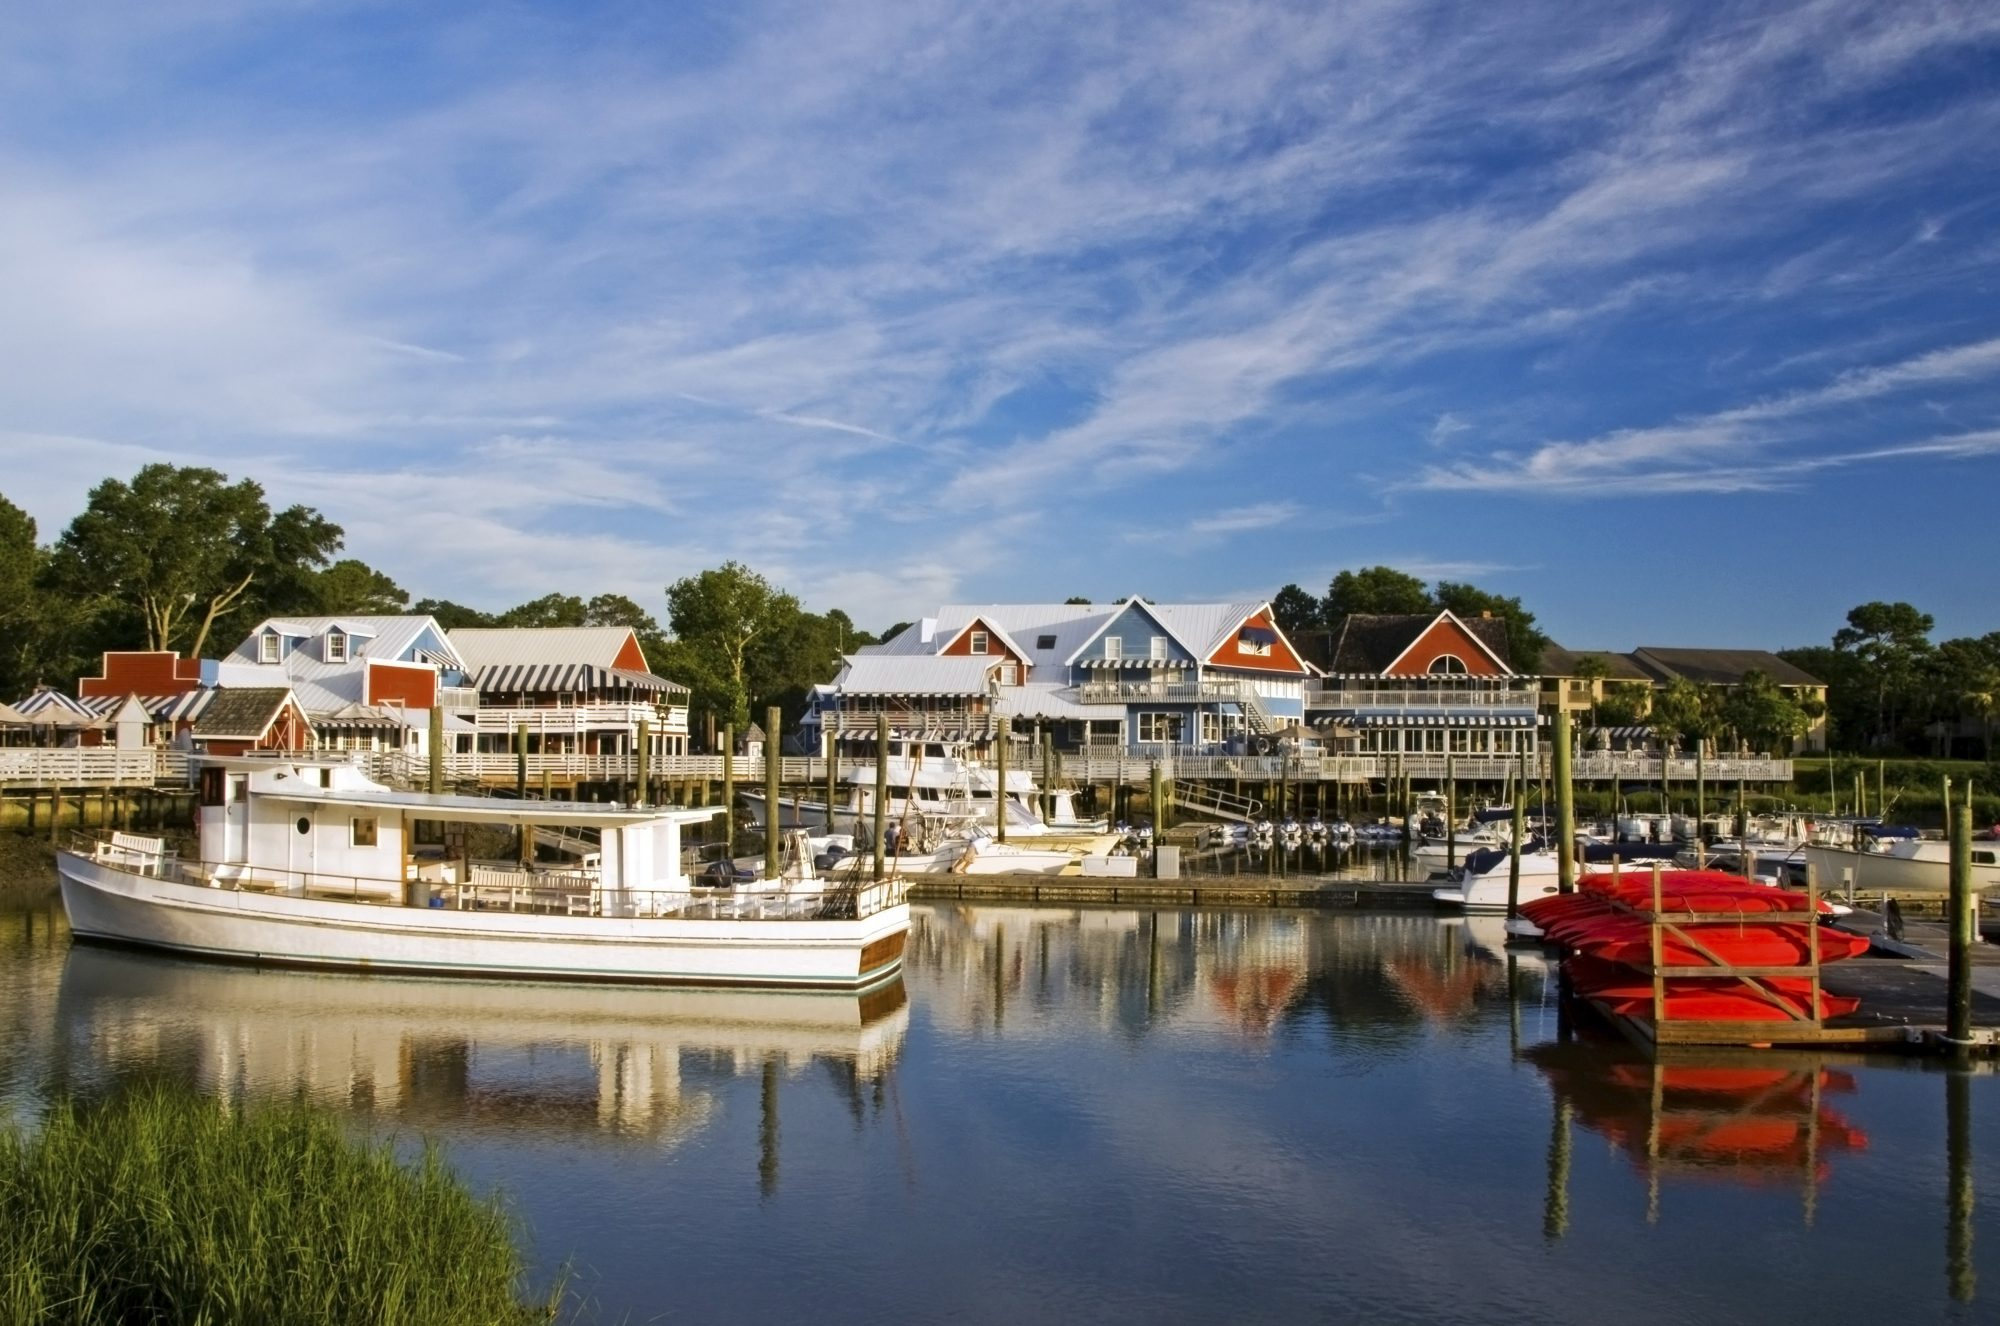 South Carolina: Hilton Head Island